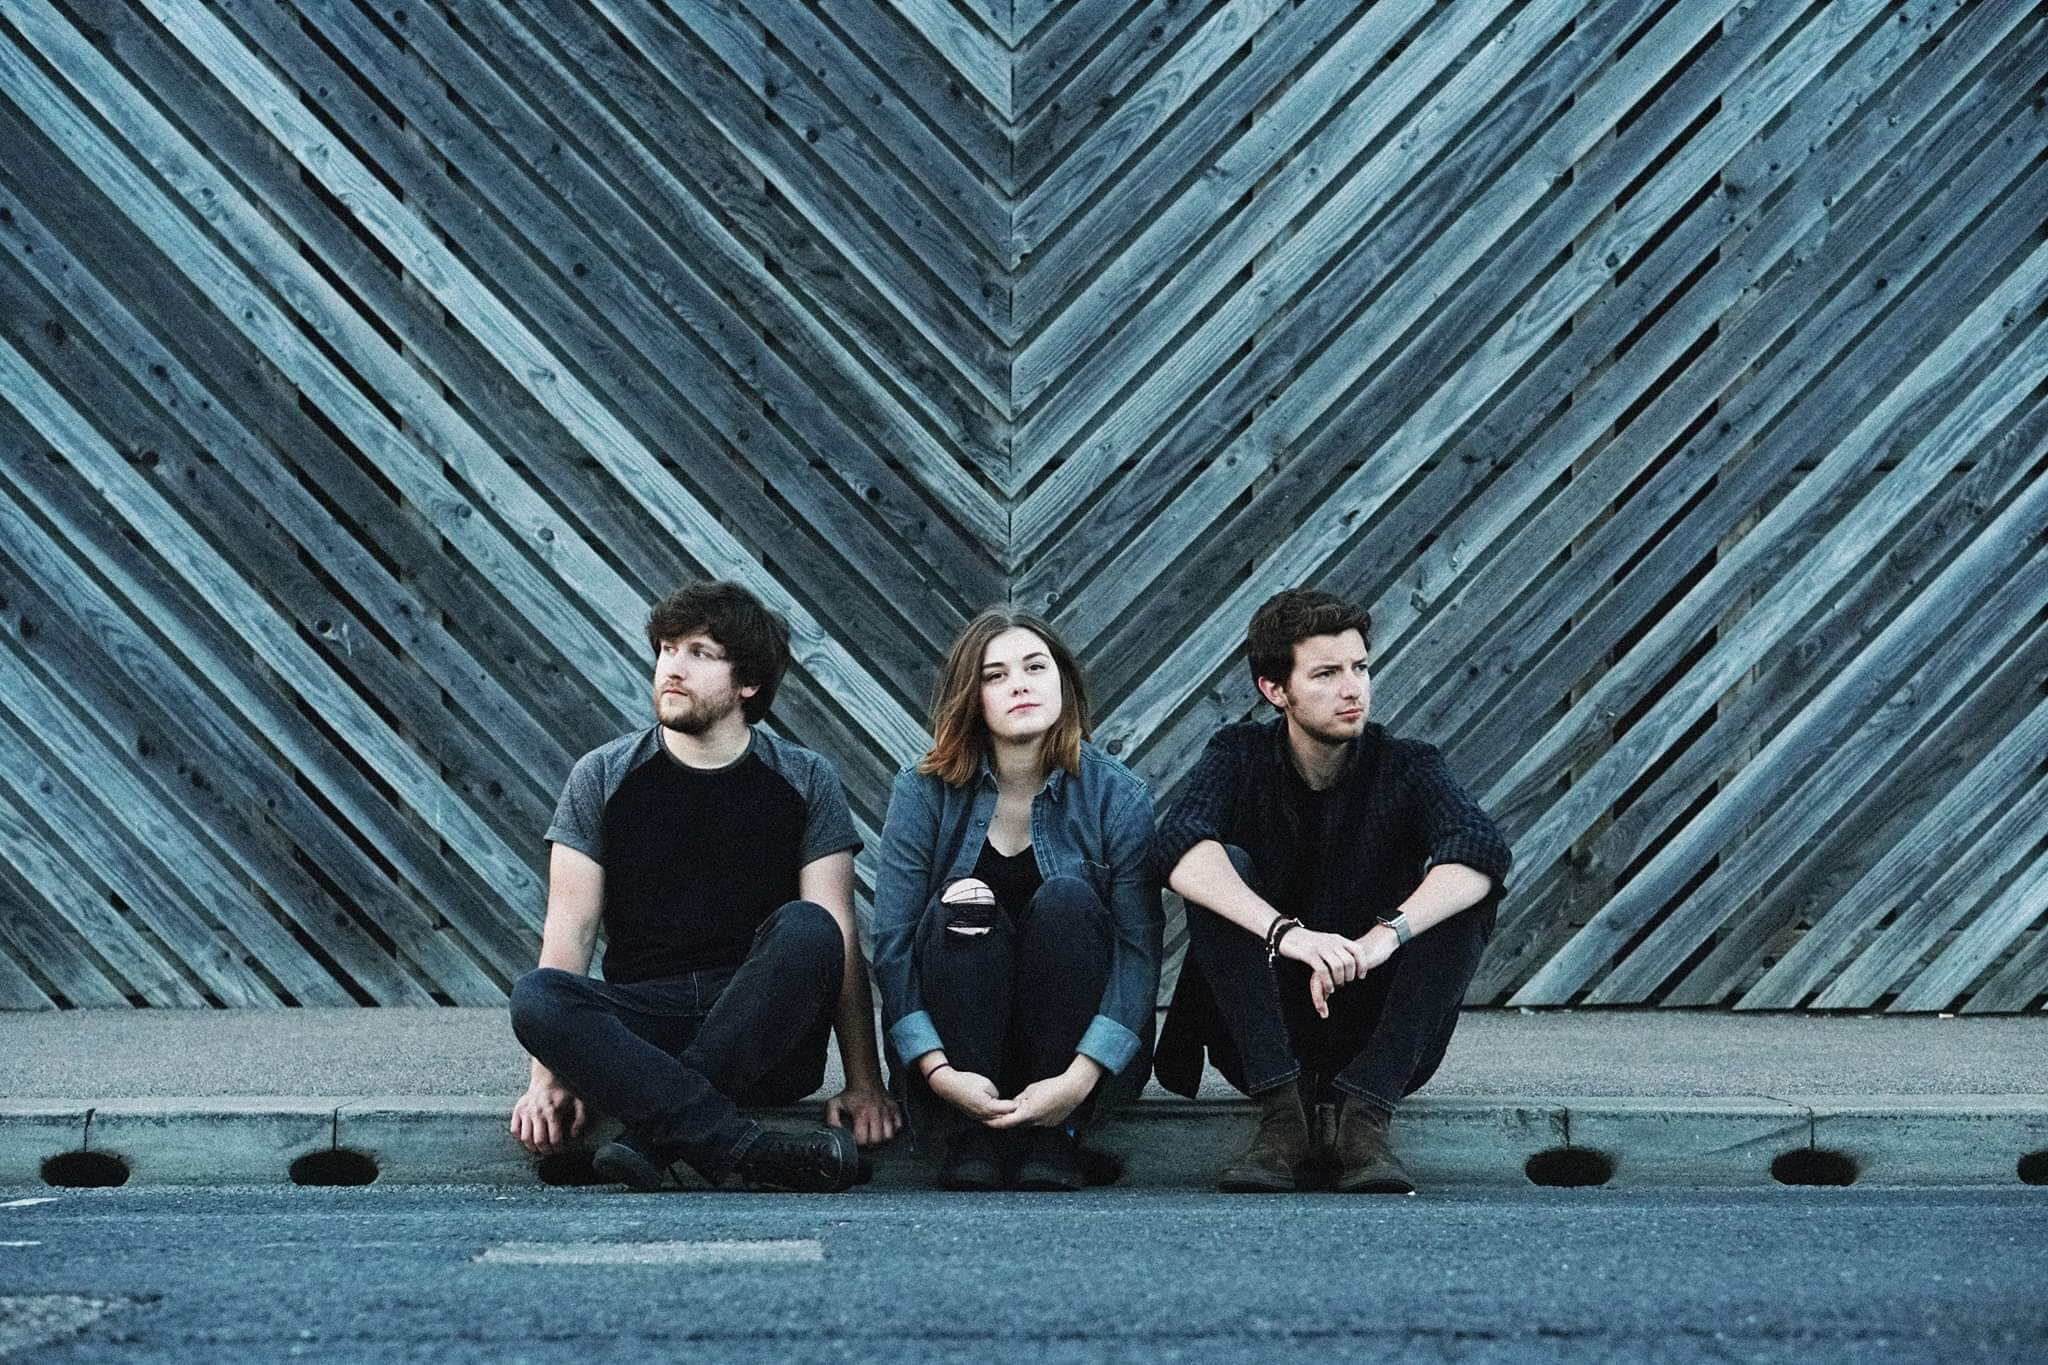 INTERVIEW WITH… INDIE ROCK TRIO IN EARNEST